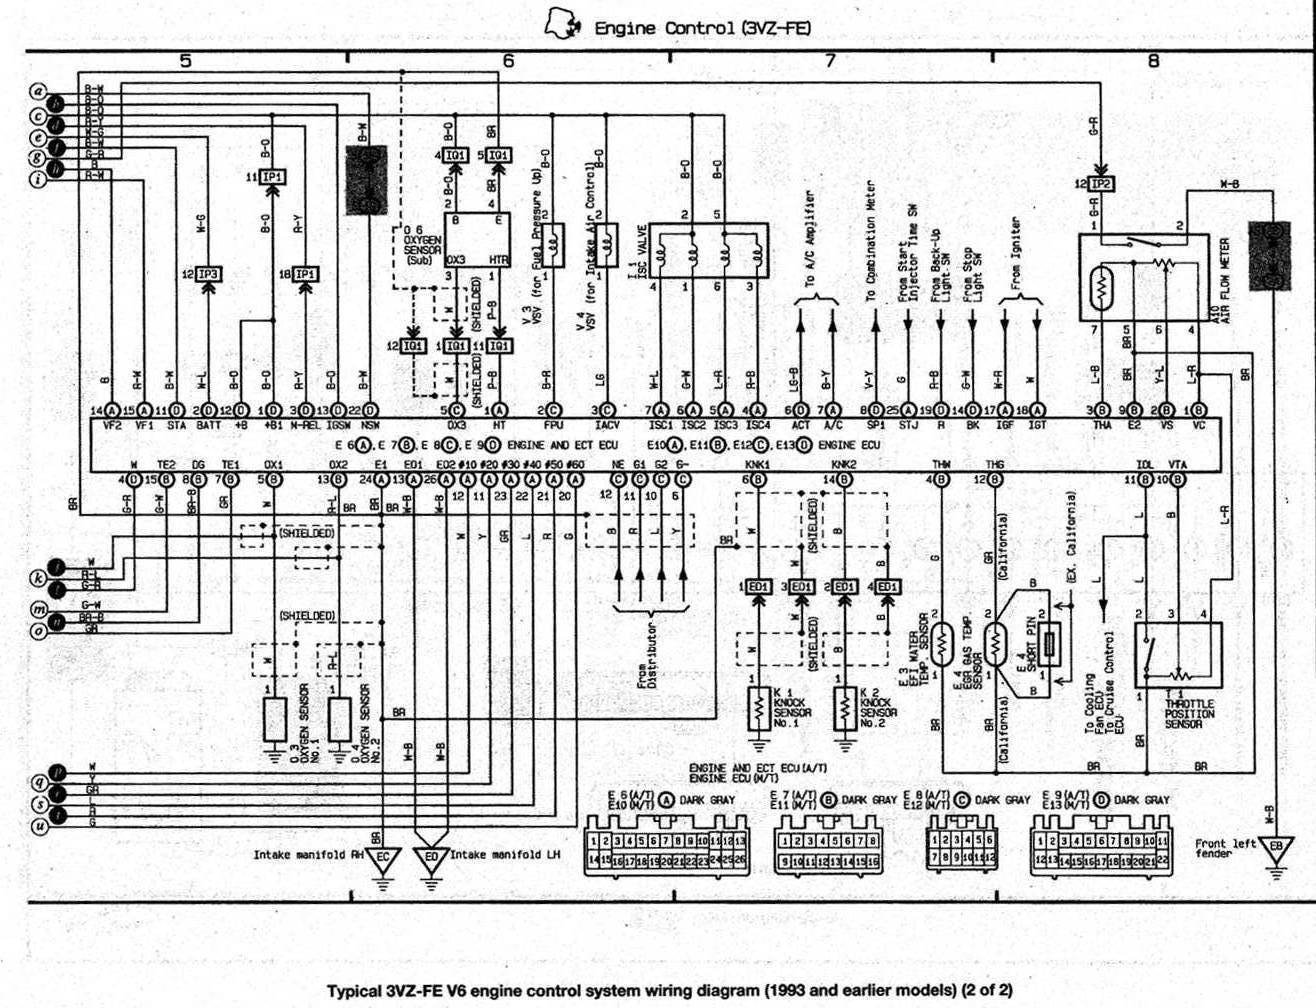 3sgte engine diagram  3sgte  get free image about wiring